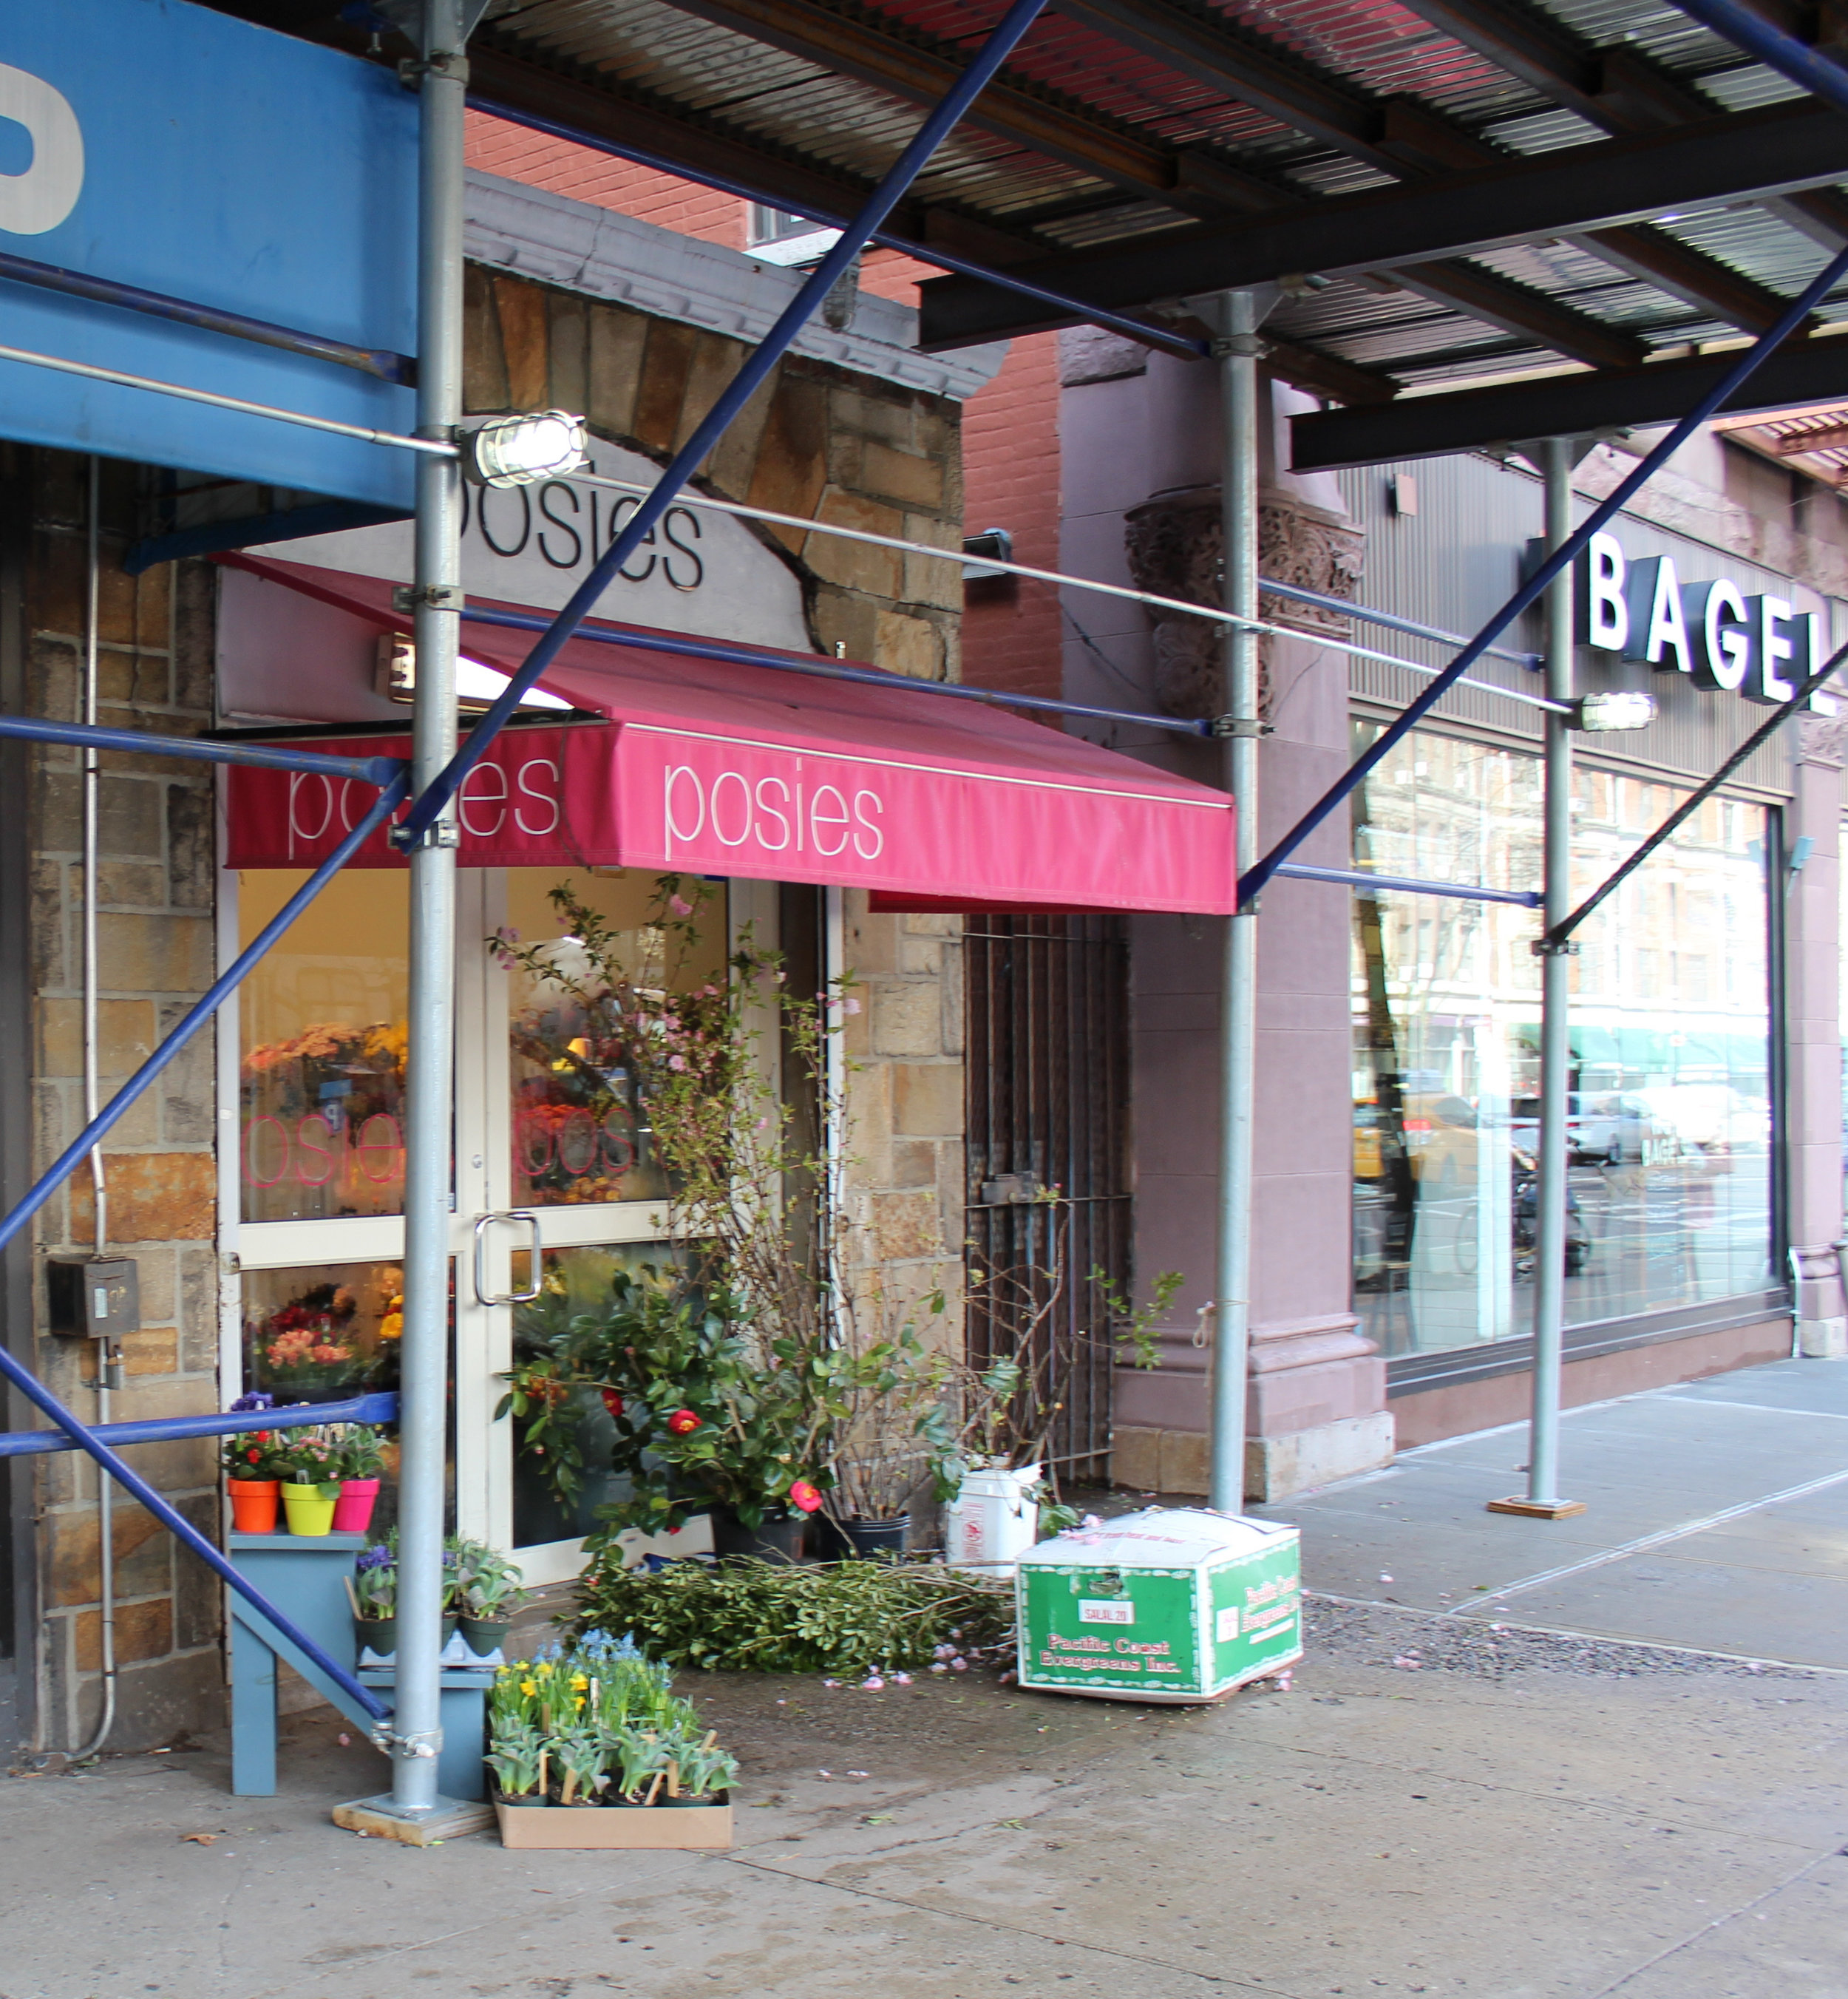 The stone work above the shop entrance helped me locate the spot of the former Roosters Flowers.